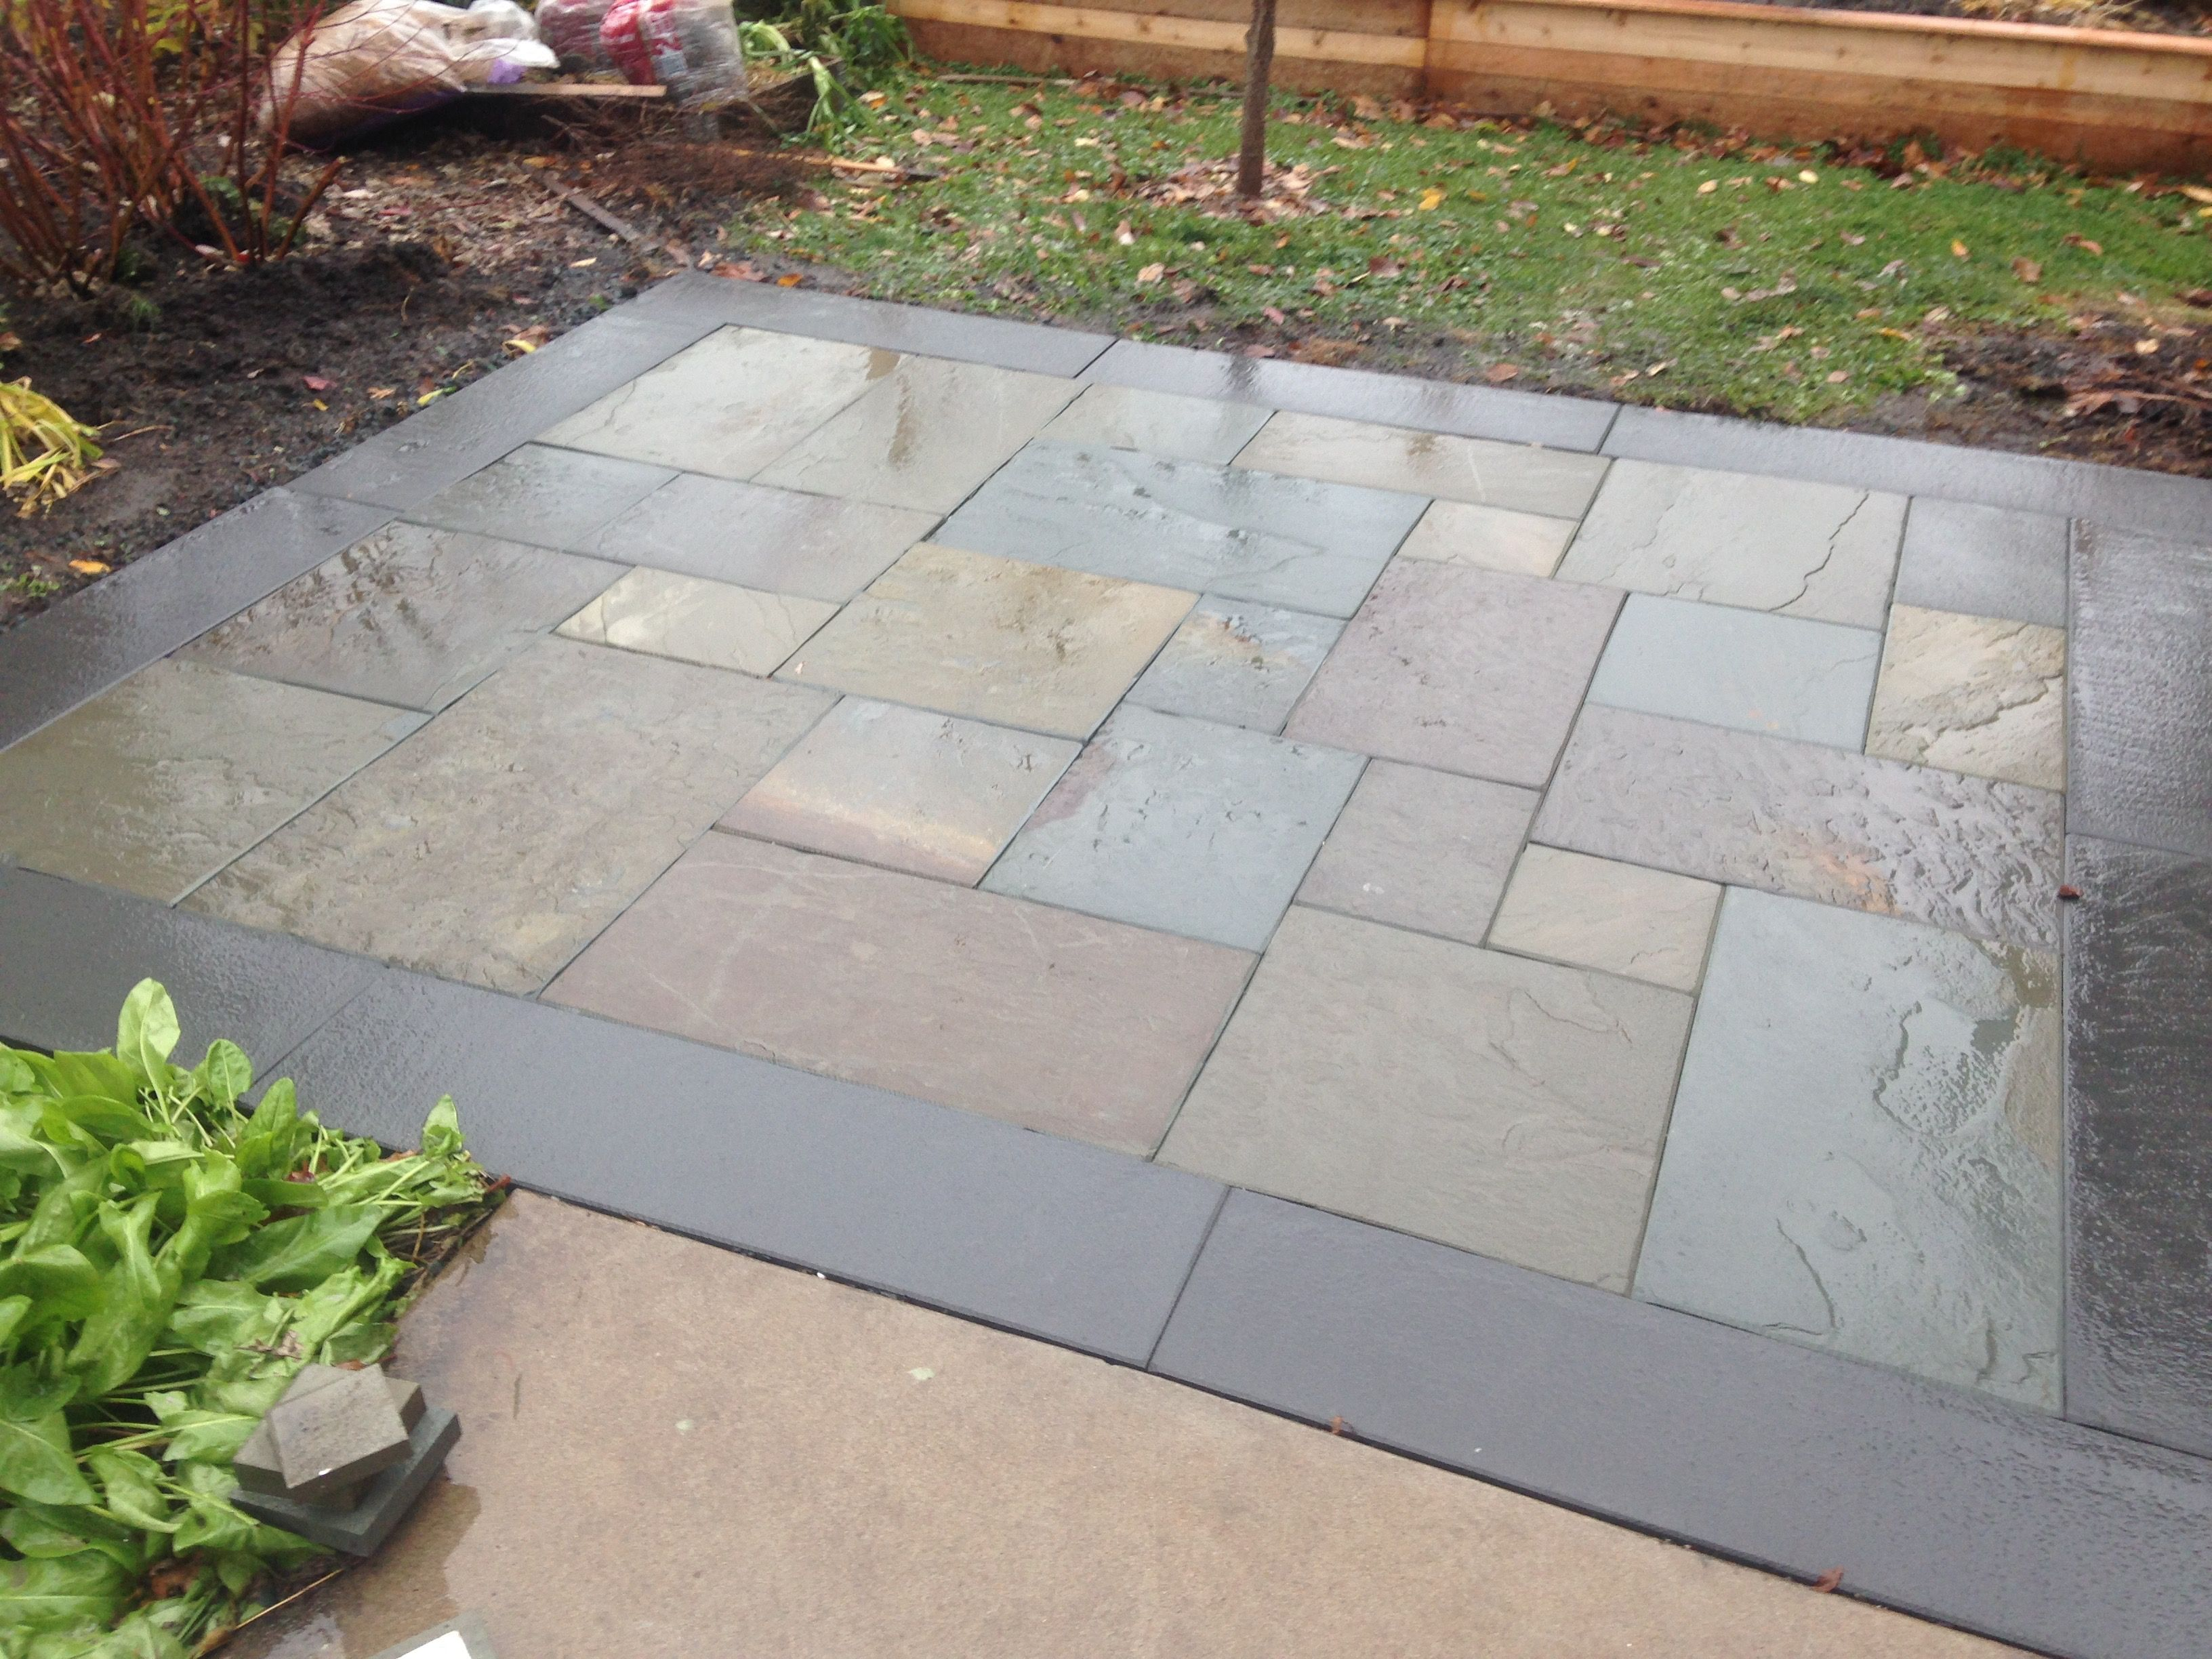 Full color bluestone patio with thermal border 736p for Bluestone porch